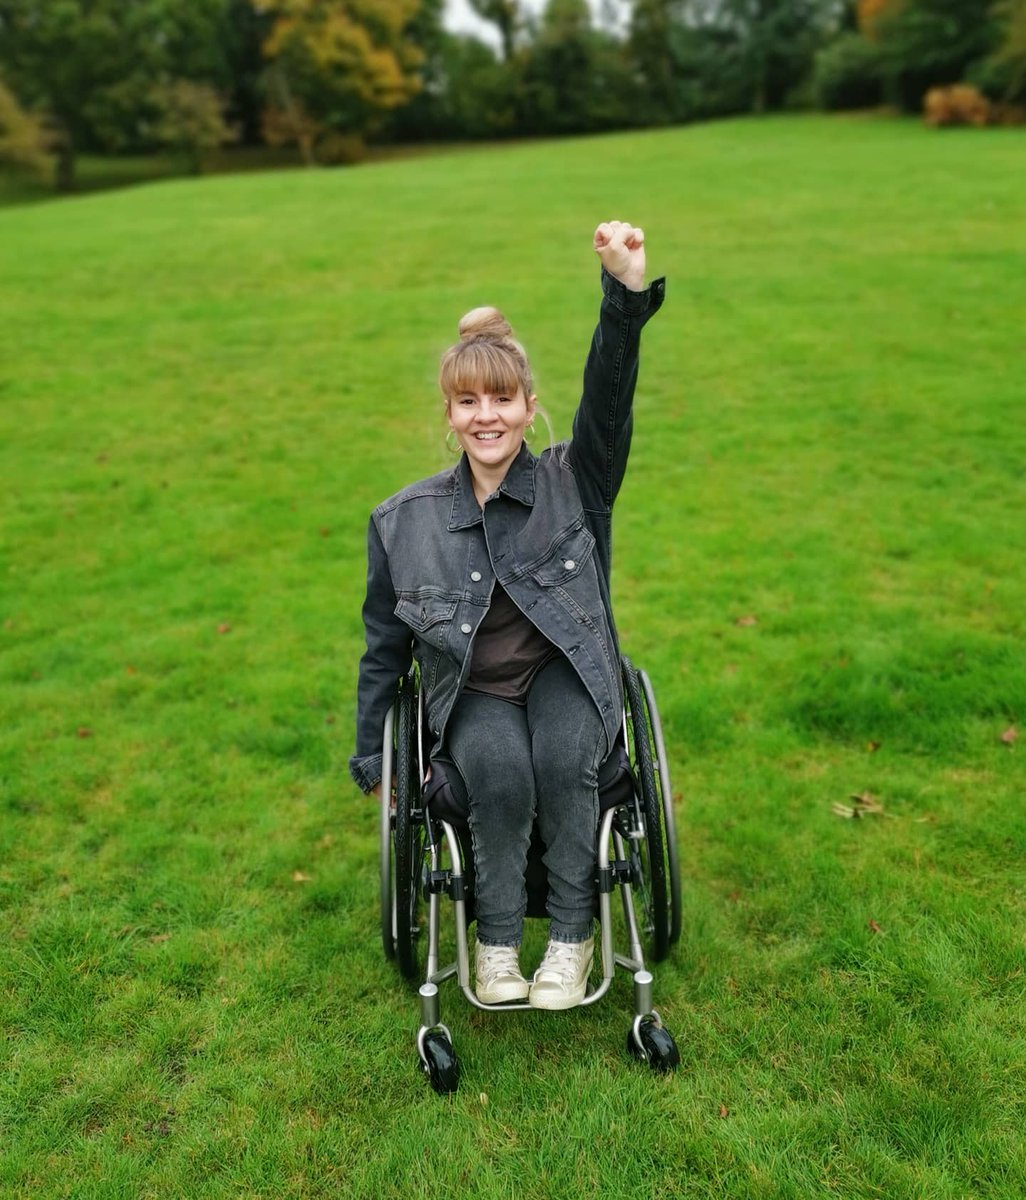 """To the doctors who said we'd have no quality of life, the ones who say they'd """"never cope"""" if it were them & to those who said that so much would be impossible for us, well HERE WE ARE. Spina Bifida Strong, today, tomorrow and always.✊🏼  #worldspinabifidaday  #spinabifida https://t.co/dTNCmC4wUd"""